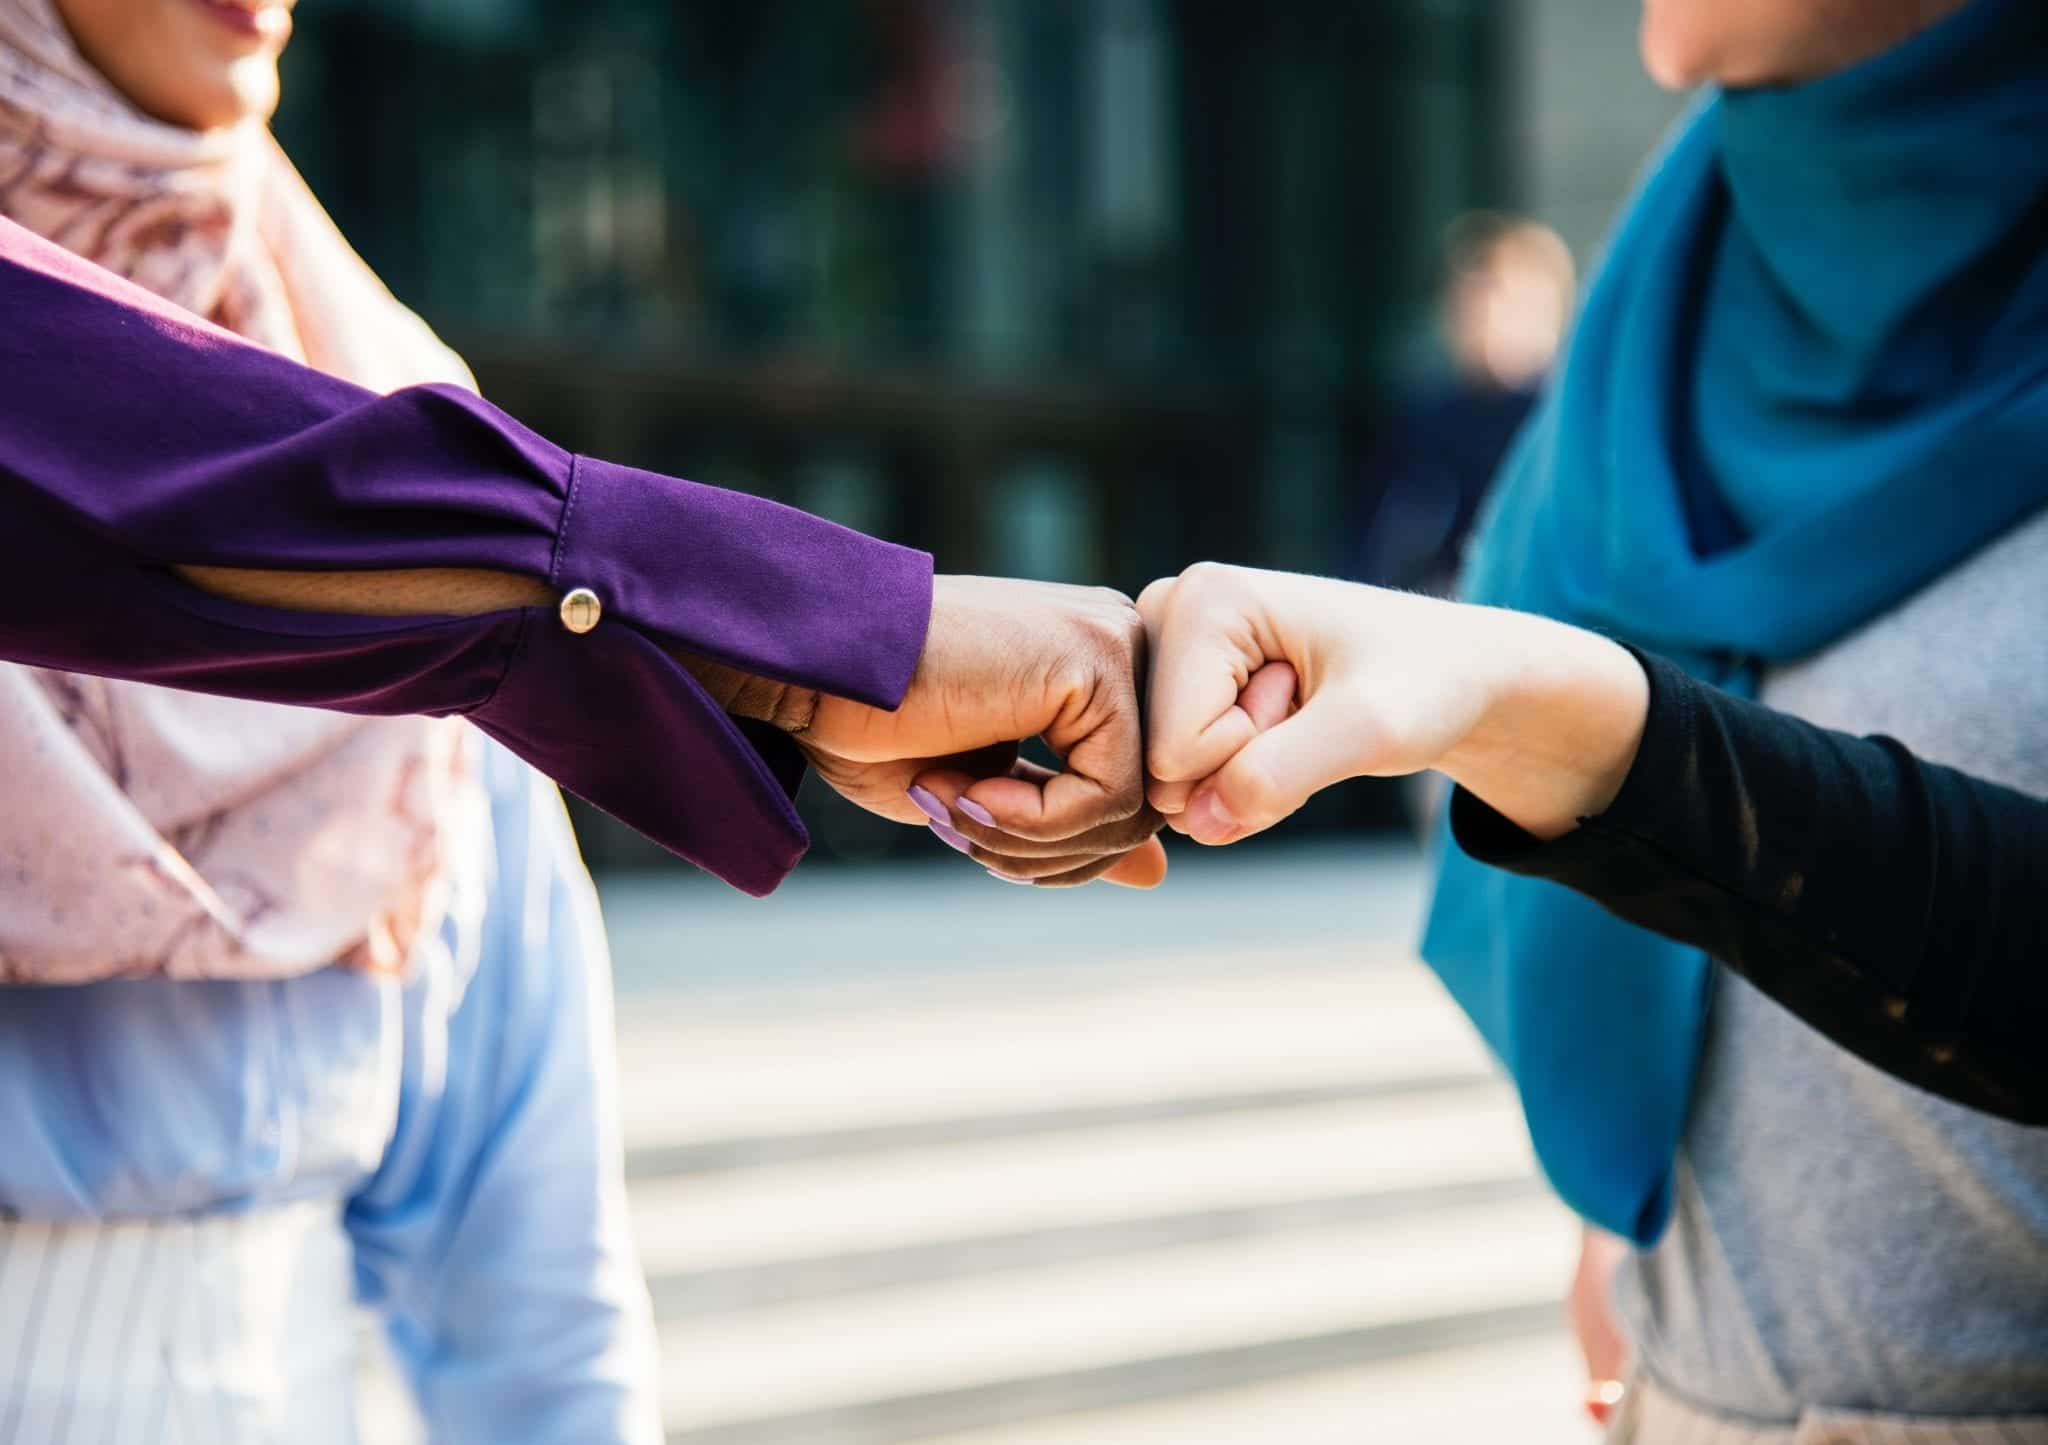 Two women bumping fists; image by Rawpixel, via Unsplash.com.